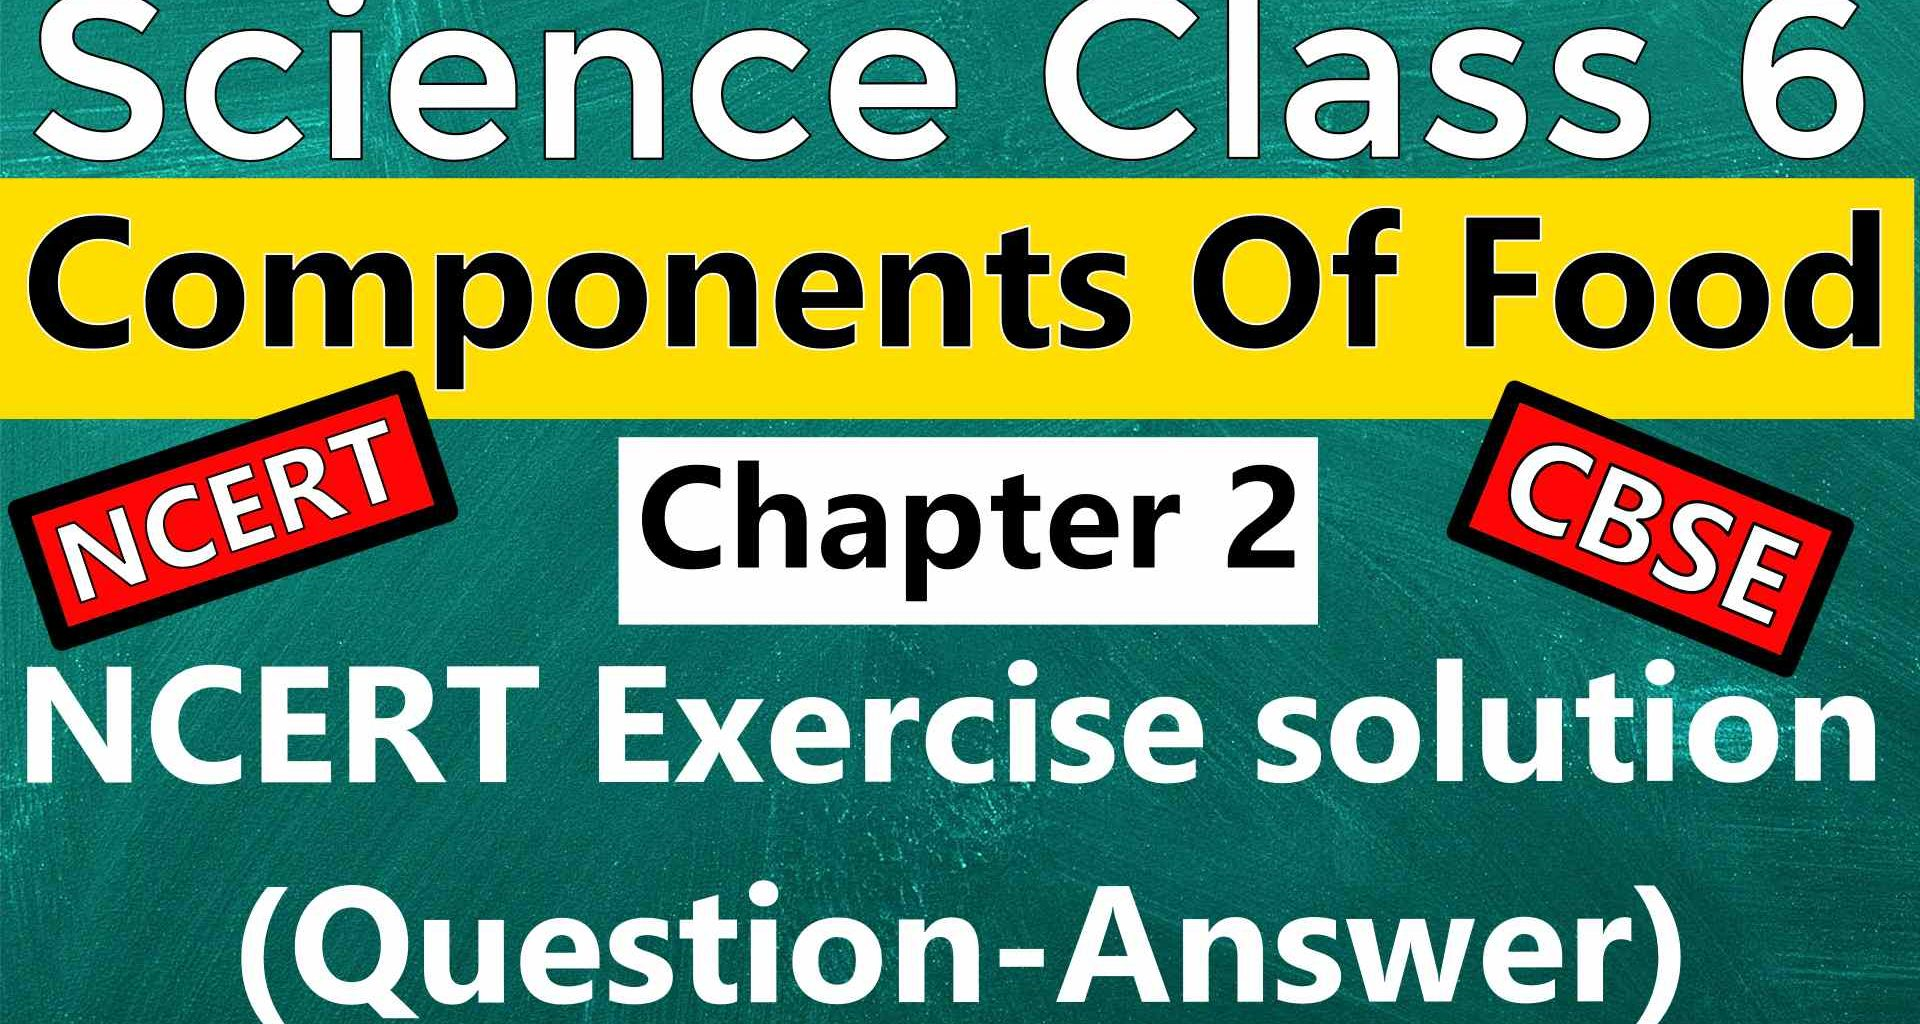 Science Class 6 - Chapter 2 - Components Of Food - NCERT Exercise solution (Question-Answer)